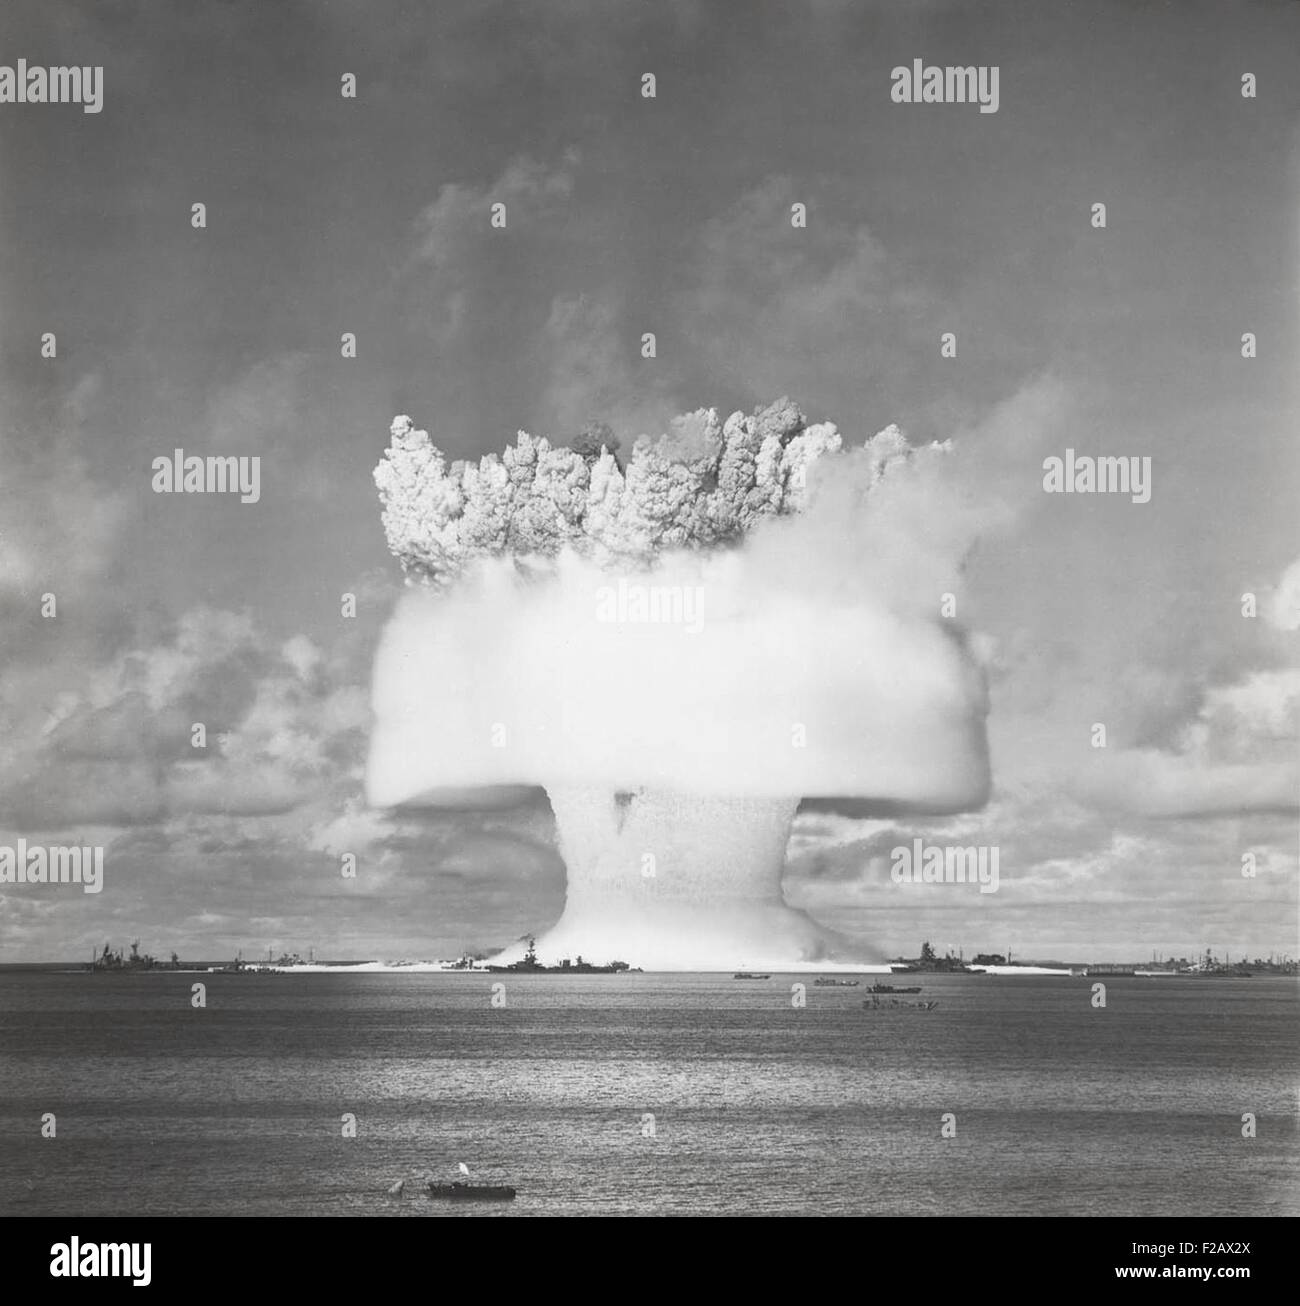 The BAKER test of Operation Crossroads, July 25, 1946. 2 seconds after the underwater detonation, the 'birthday - Stock Image